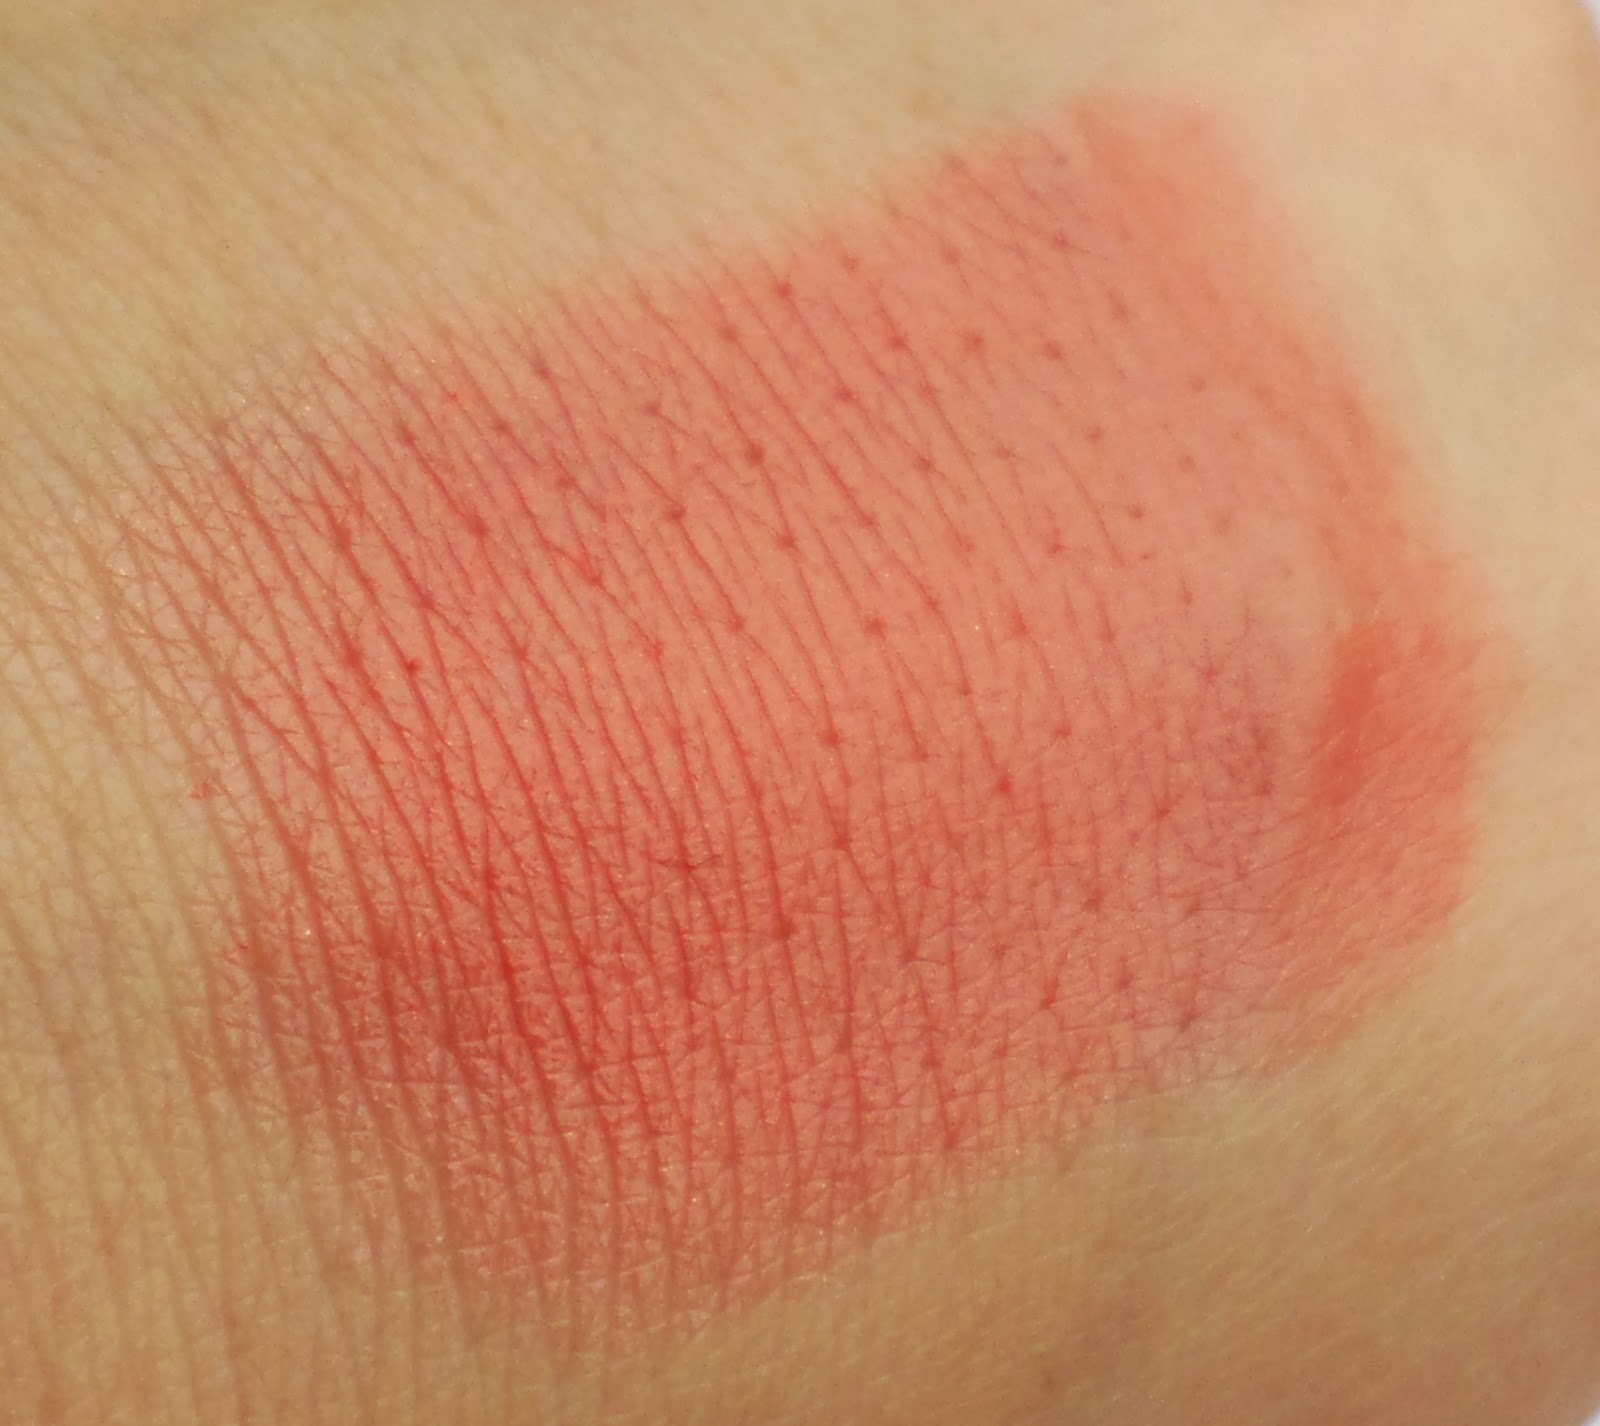 Born Pretty Velvet Finish Moisturising Lipstick in the Shade 01 Swatched